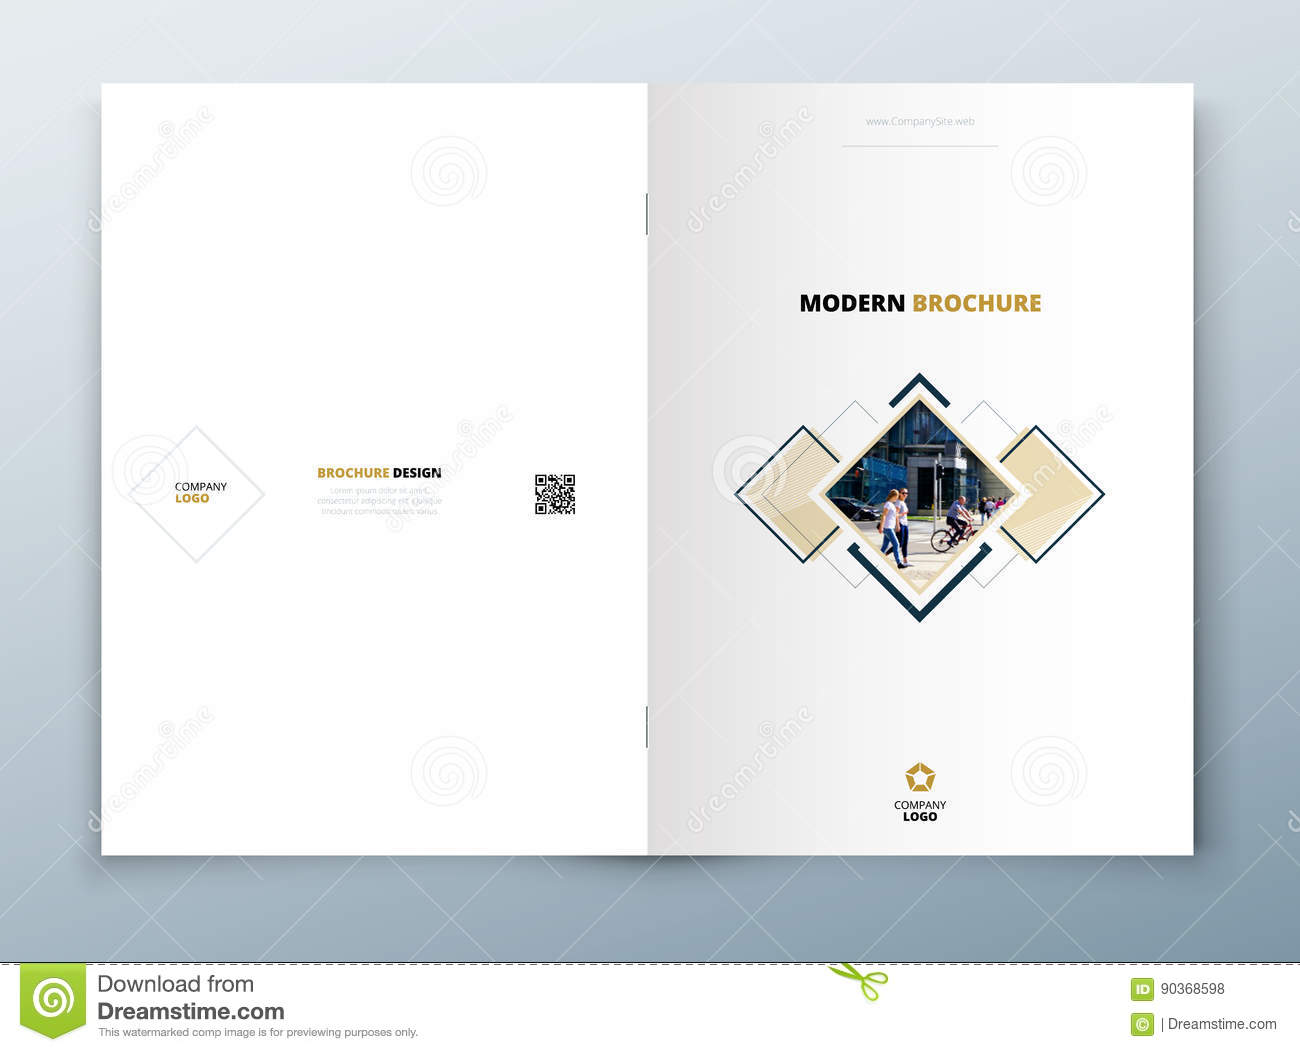 our free catalog templates come in different file types for fast editing file preparation is easy with prepress services at uprintingcom